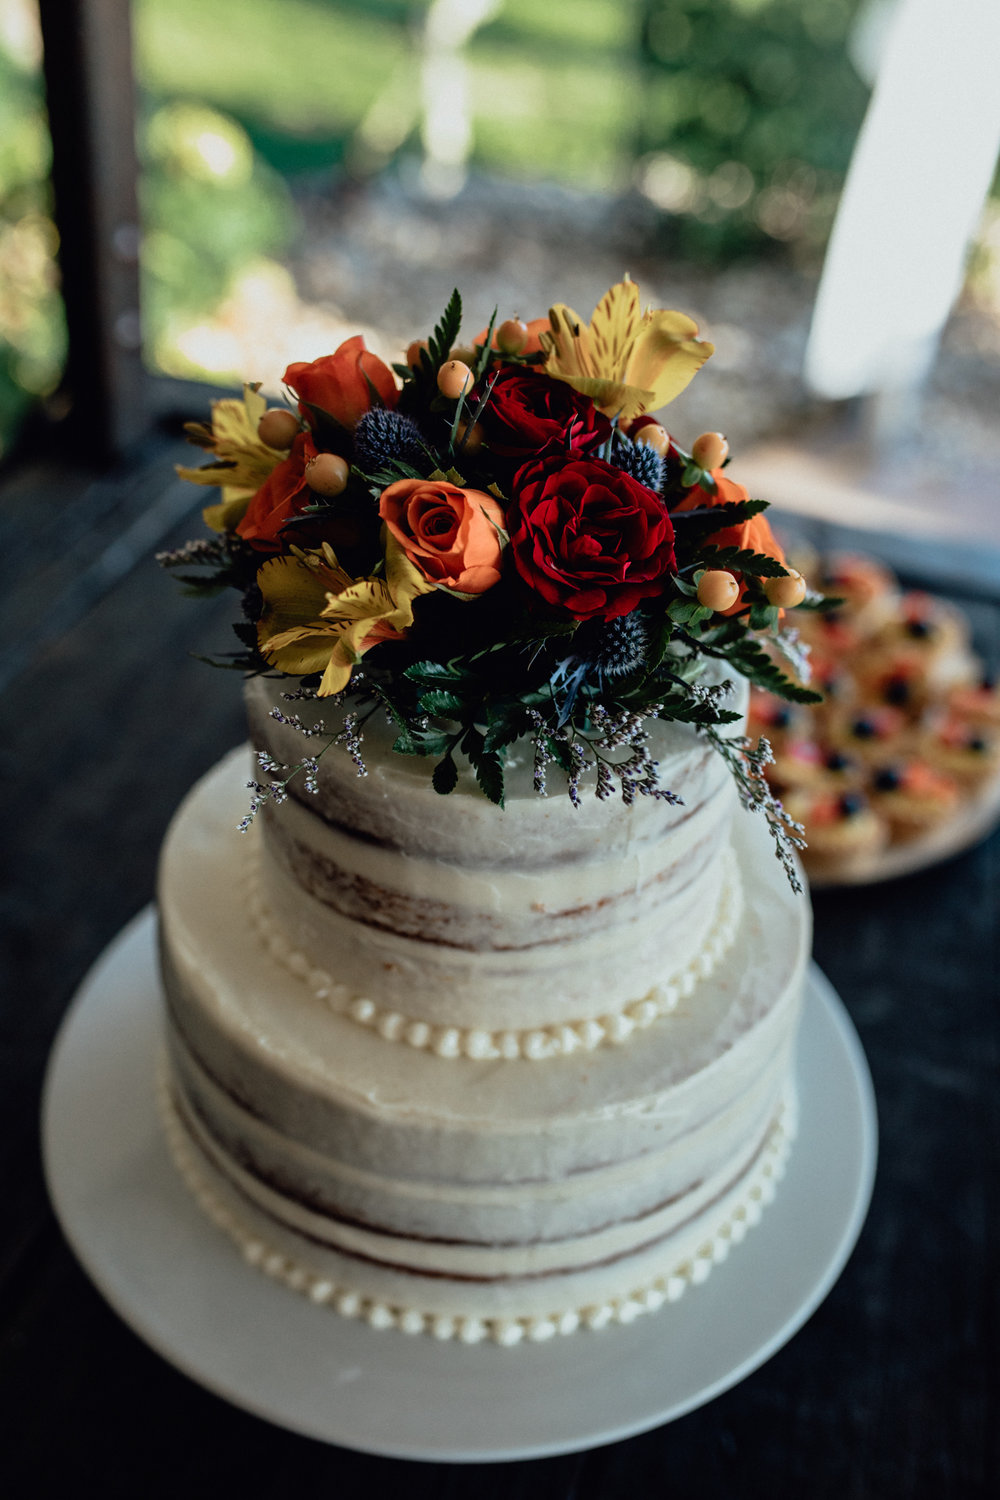 close up of cake with flowers